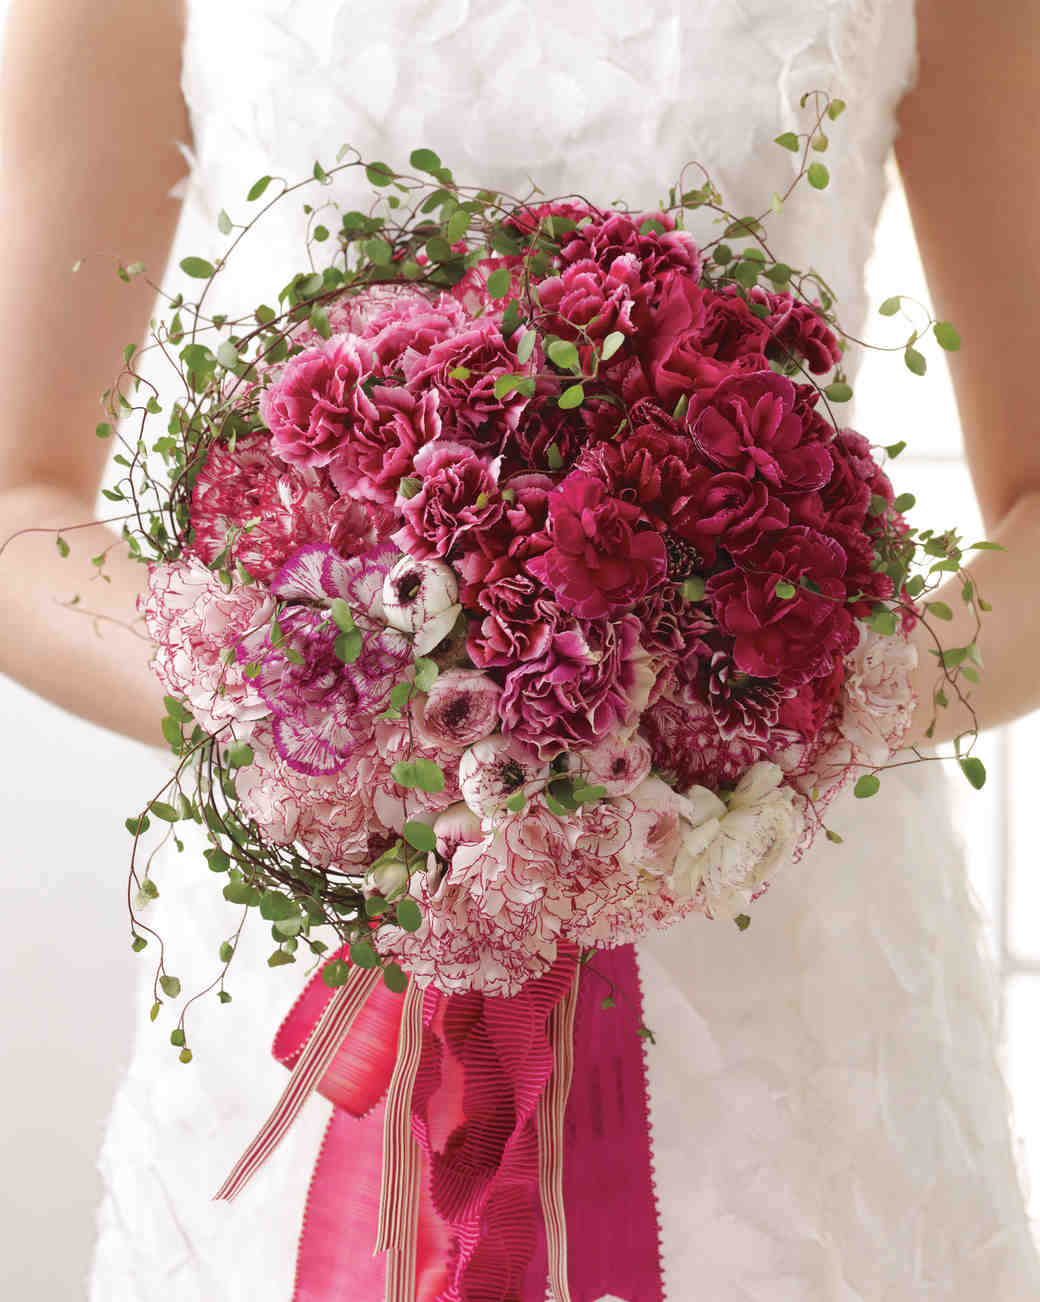 Top 5 Most Popular Wedding Bouquet Flowers And Their Symbolic Meanings